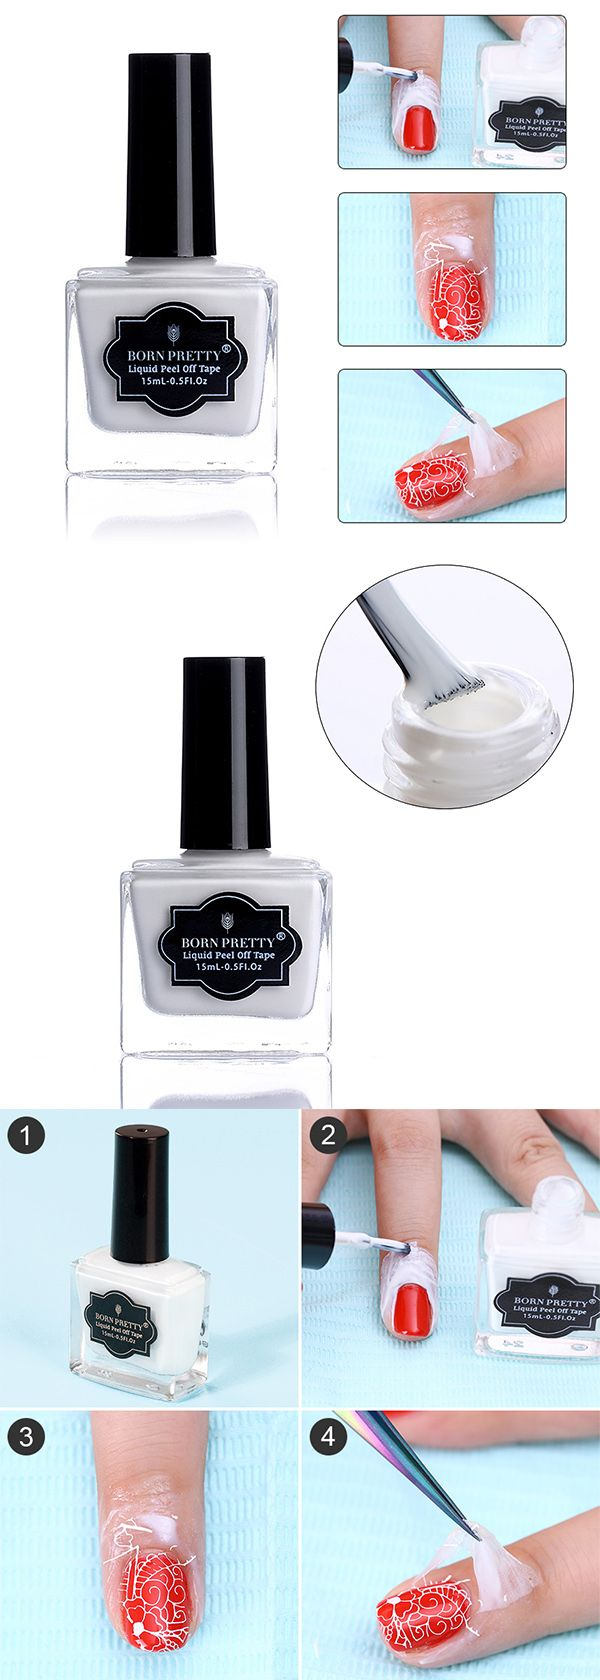 #bornpretty Antifreezing Peel Off Liquid Tape Nail Latex Cuticle Guard Manicure Nail Art Care from bornprettystore.com.  #naillatex #nailtools